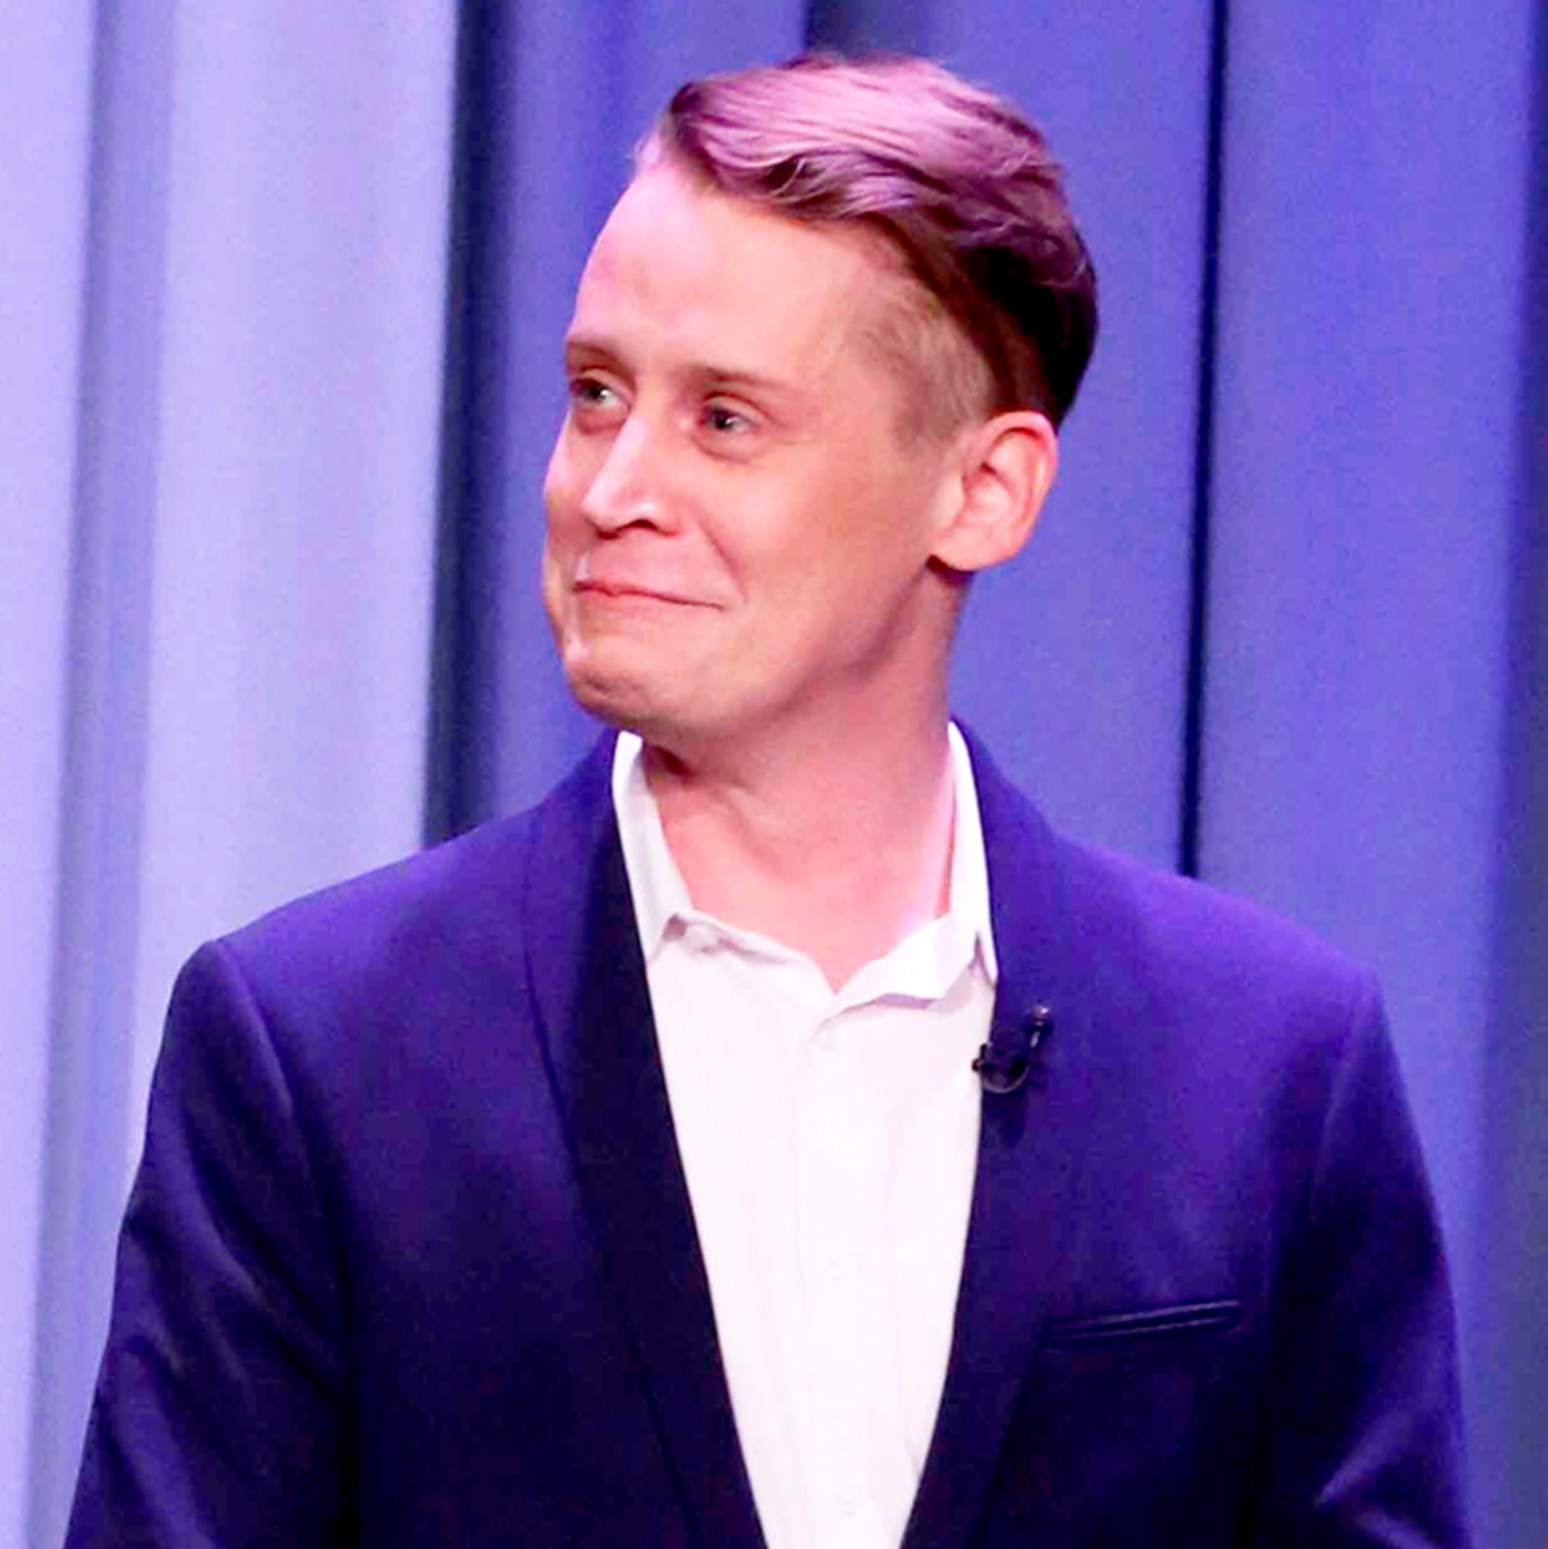 Macaulay Culkin on 'The Tonight Show'